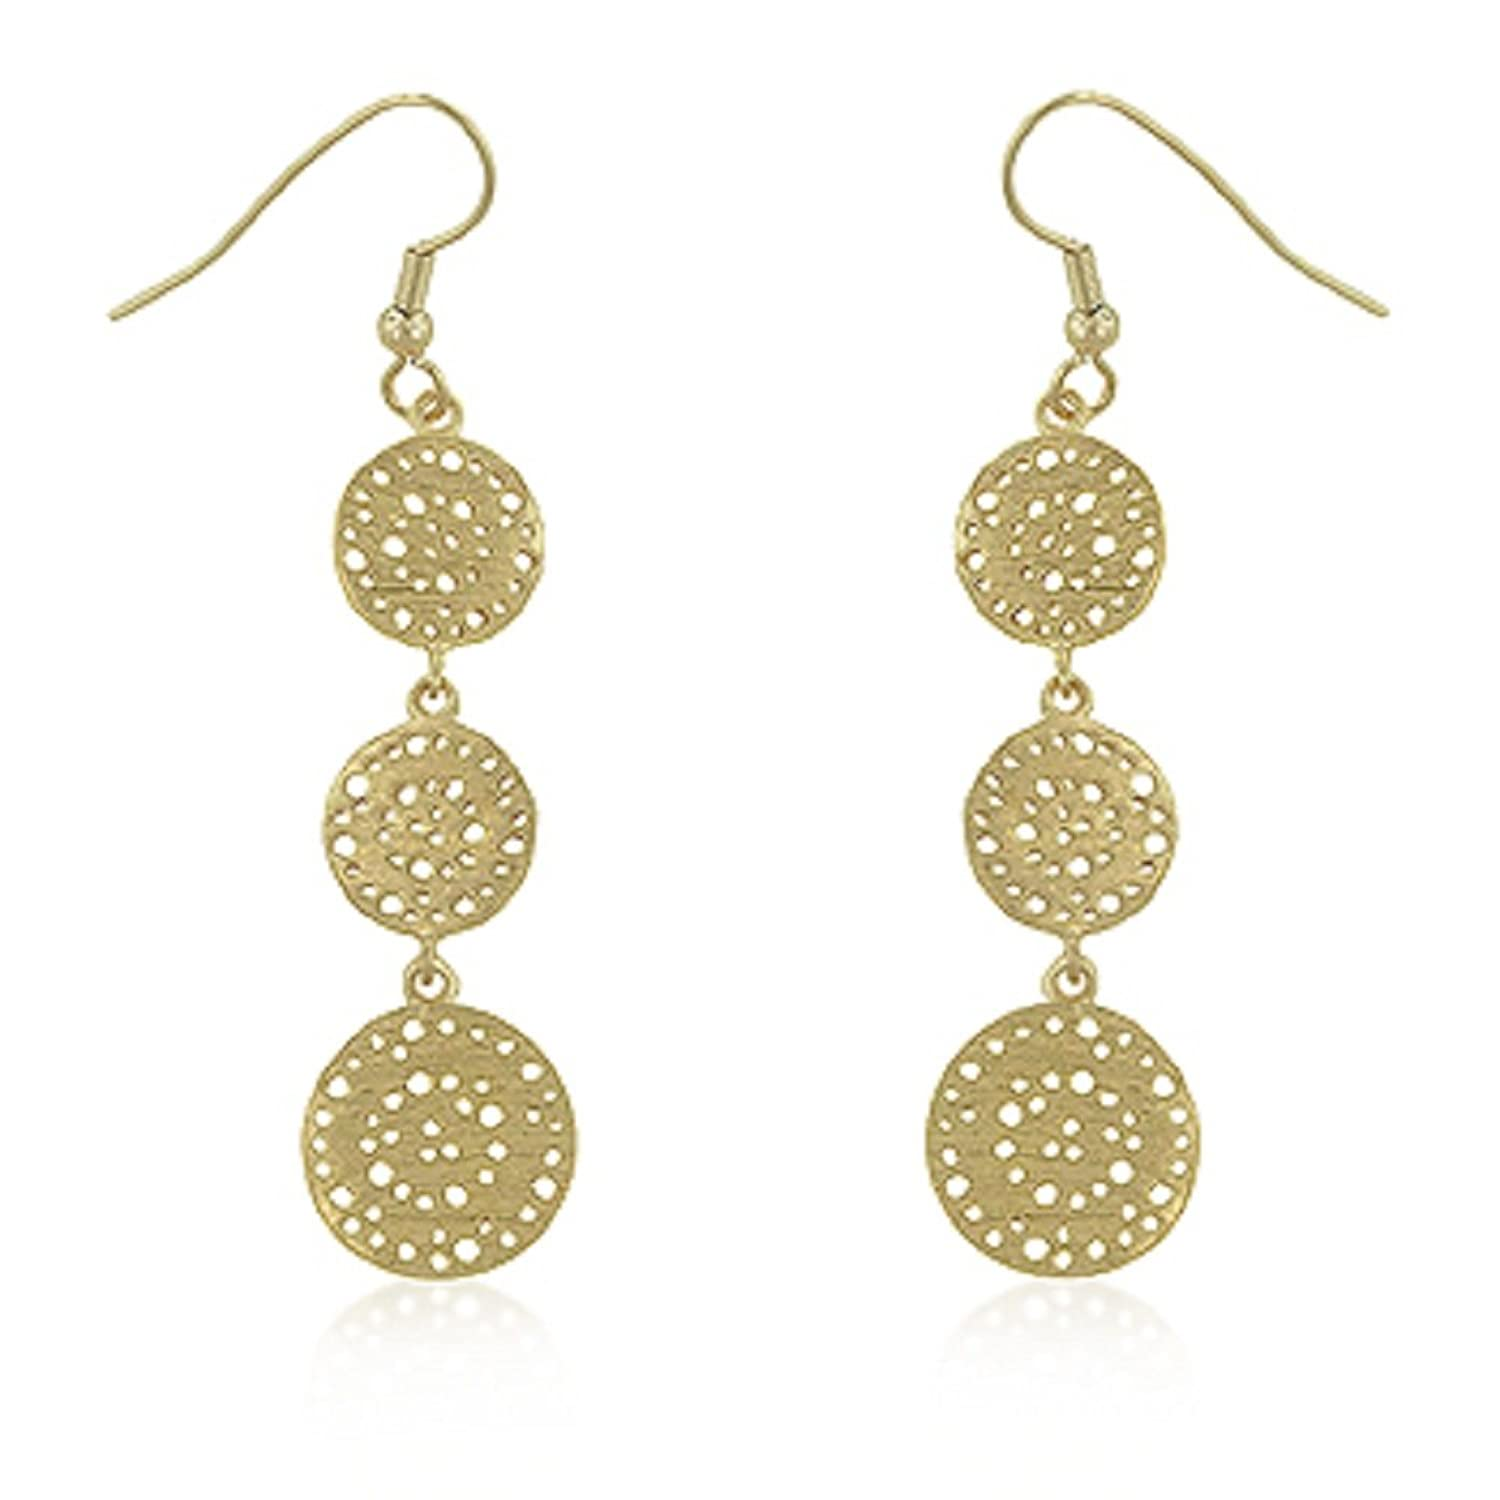 caprice circle earrings